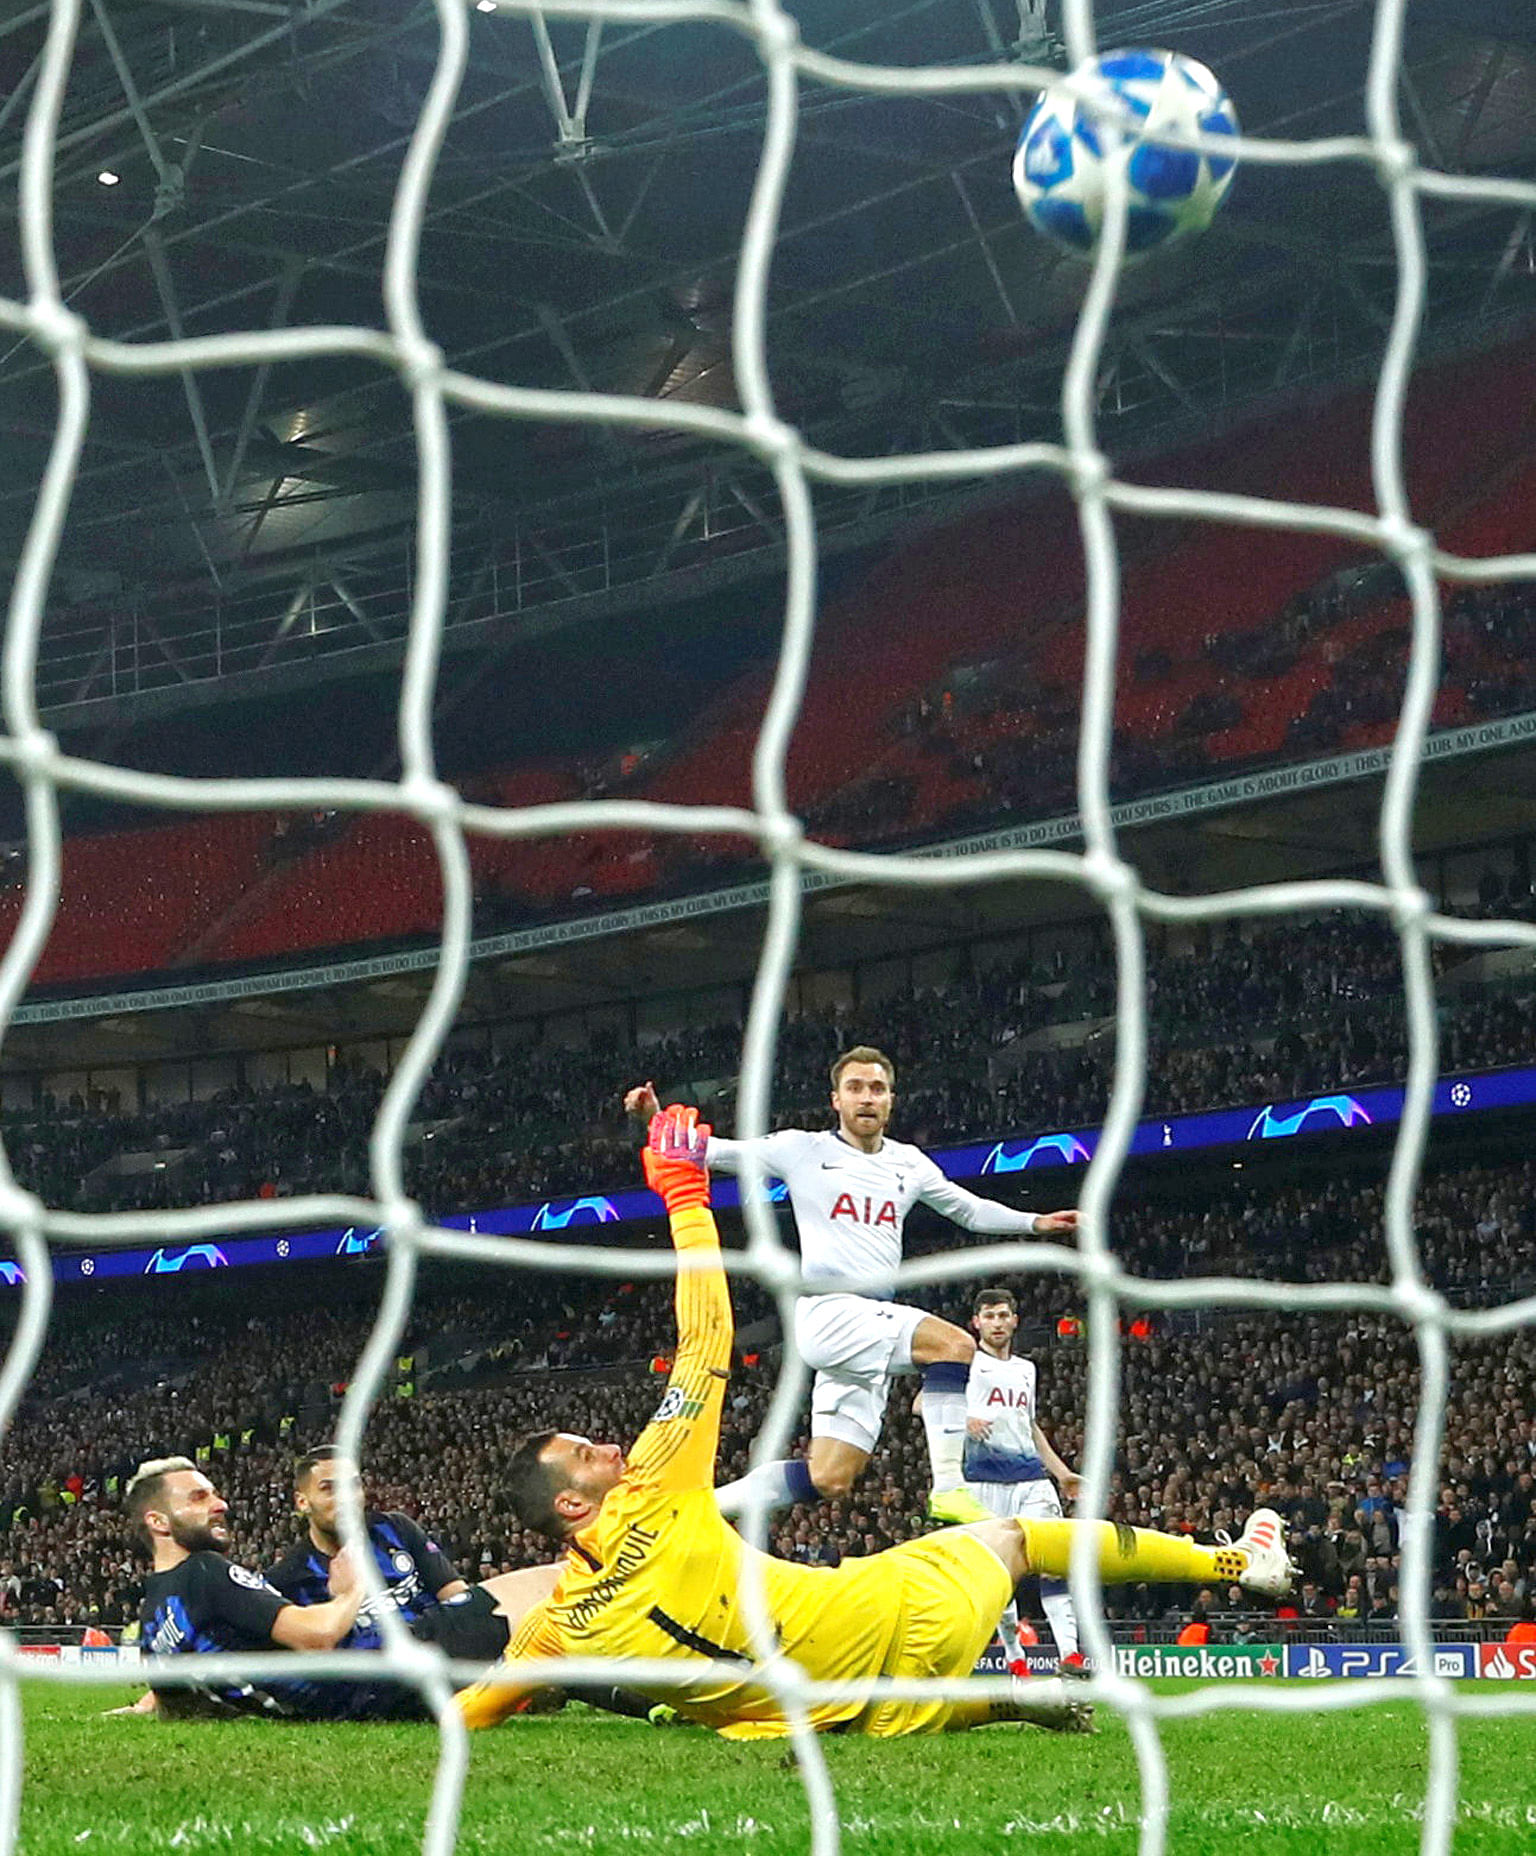 Tottenham's Christian Eriksen came off the bench to score the winner against Inter Milan and keep the English side's hopes of progressing to the knockout stages of the Champions League alive. Spurs face Barcelona in their final group game knowing any